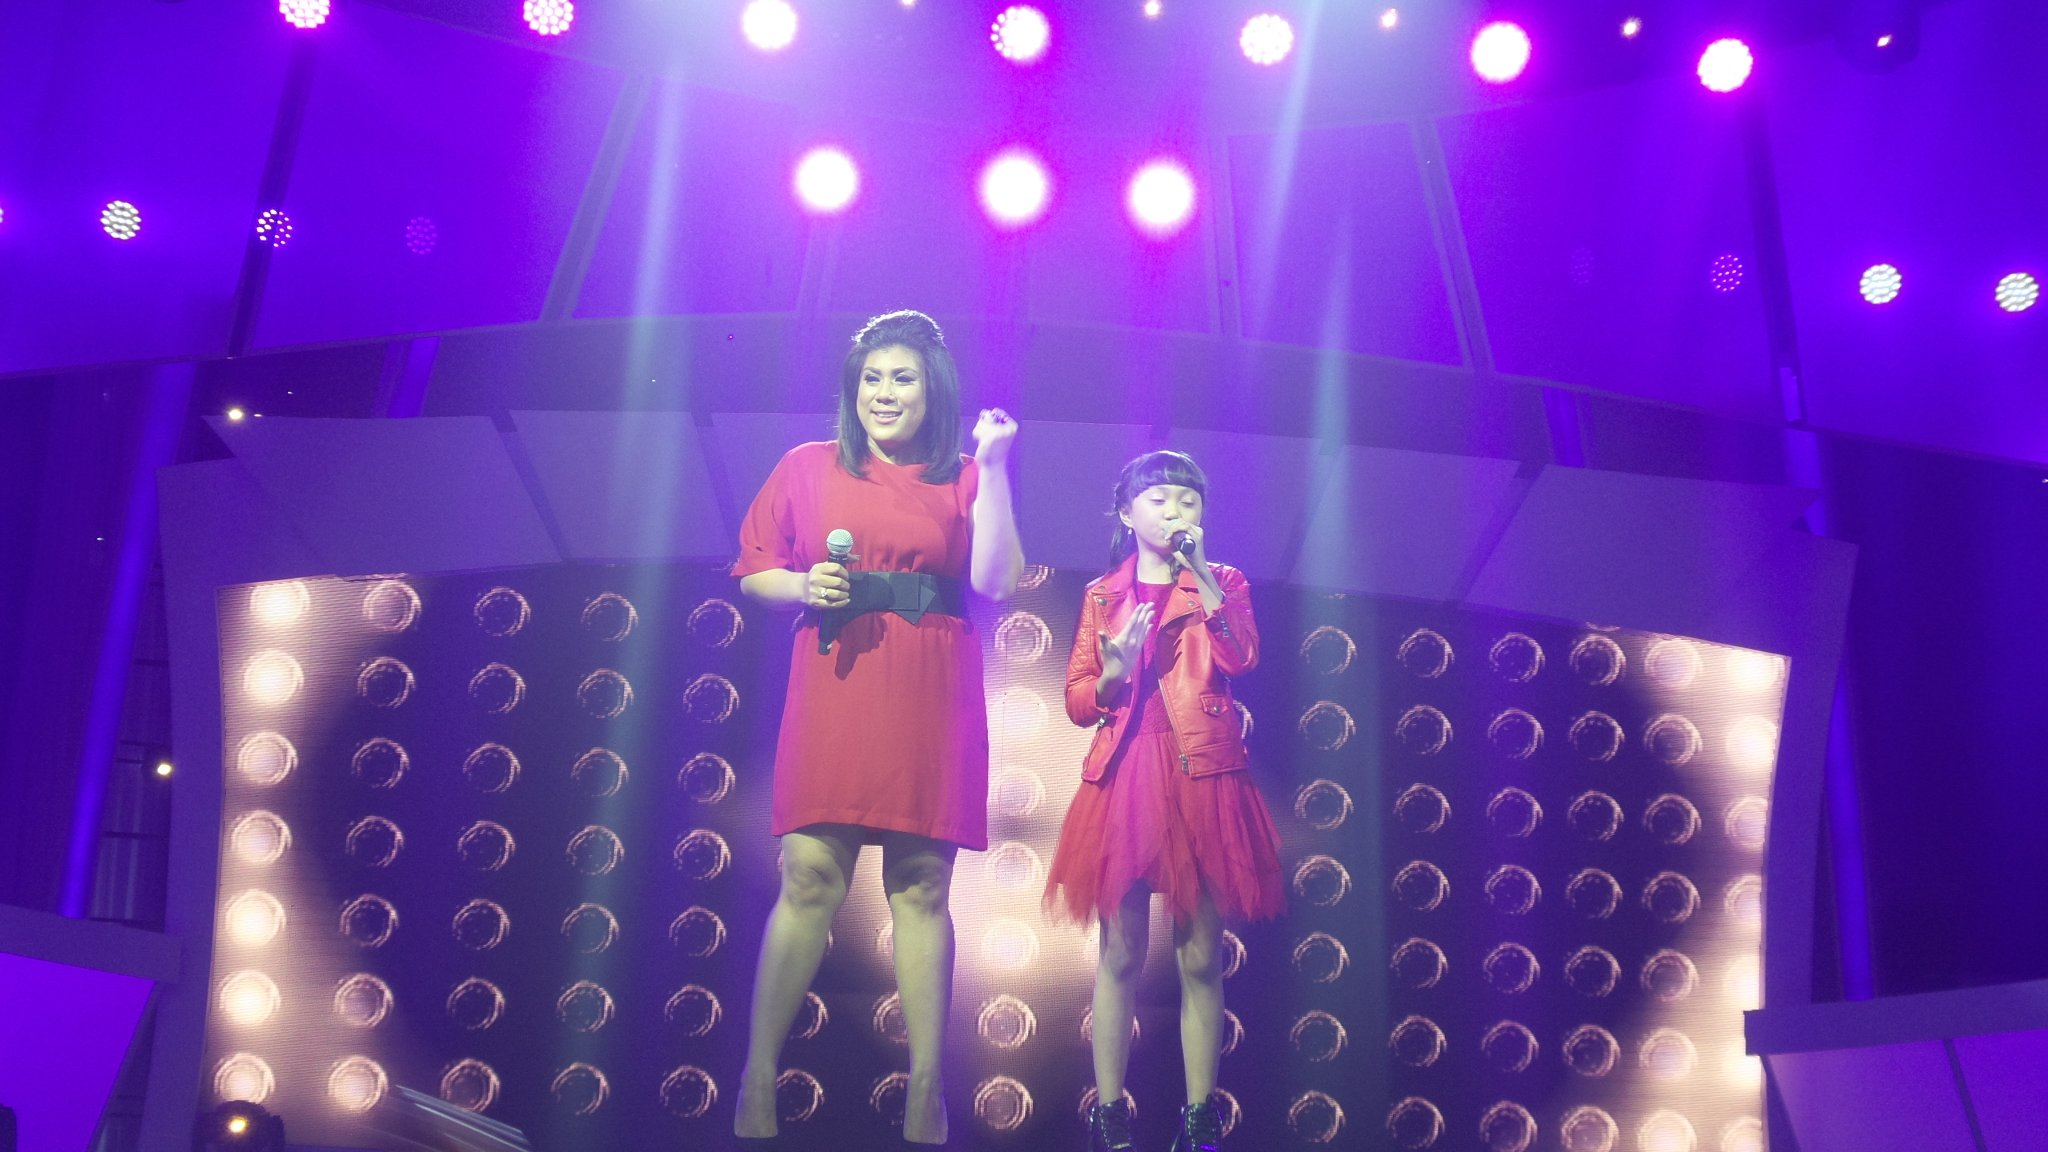 Penampilan yg luar biasa @SharonIdolJr @reginaivanova4 lagu set fire to the rain #IdolJrDuetStar @Official_MNCTV https://t.co/whHGcqQG8e